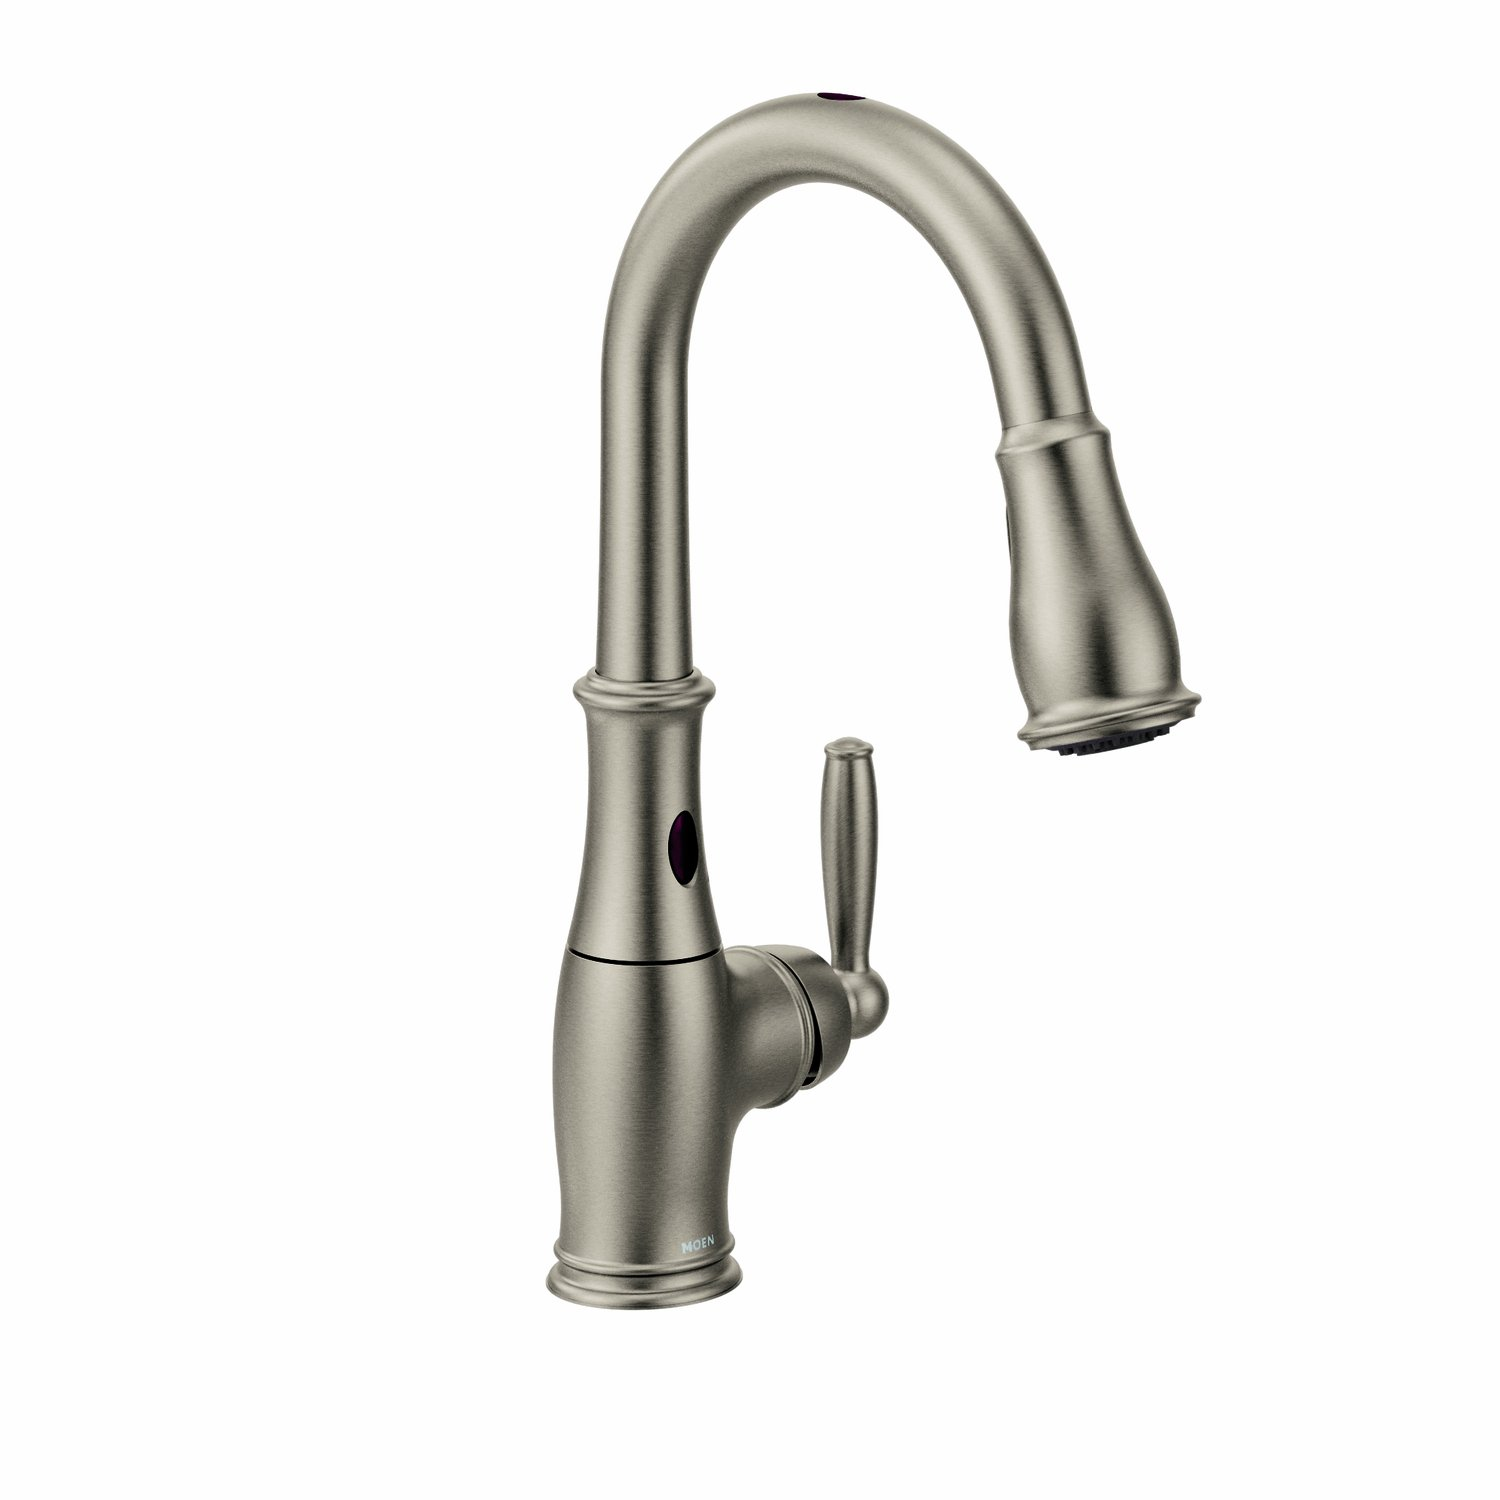 Moen 7185ESRS Brantford with MotionSense One-Handle High Arc Pulldown Kitchen Faucet Featuring Reflex, Spot Resist Stainless